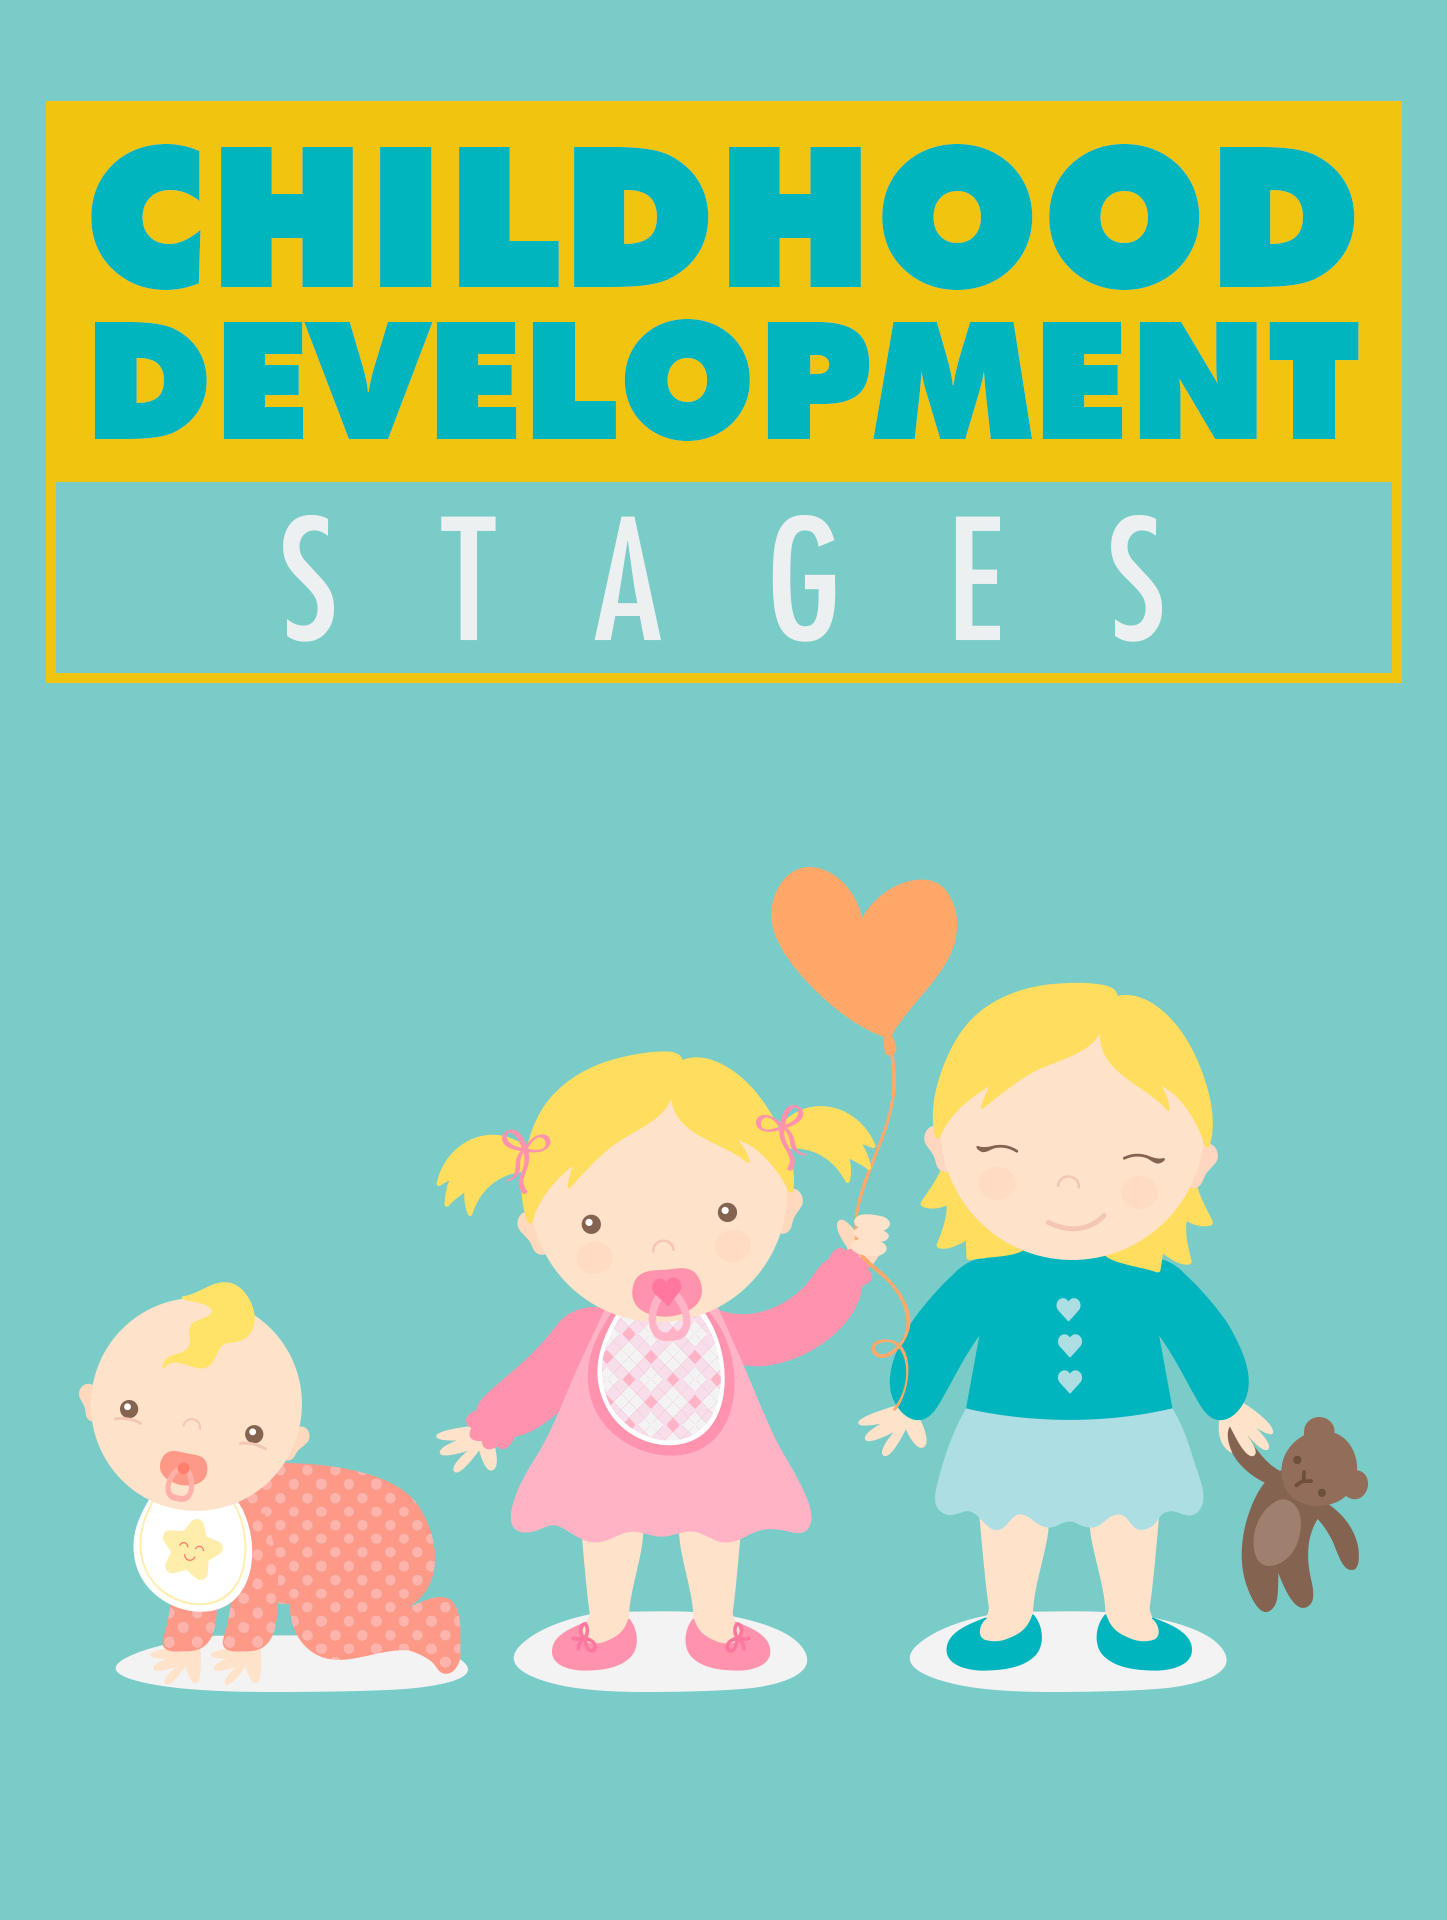 Childhood-Development-Stages